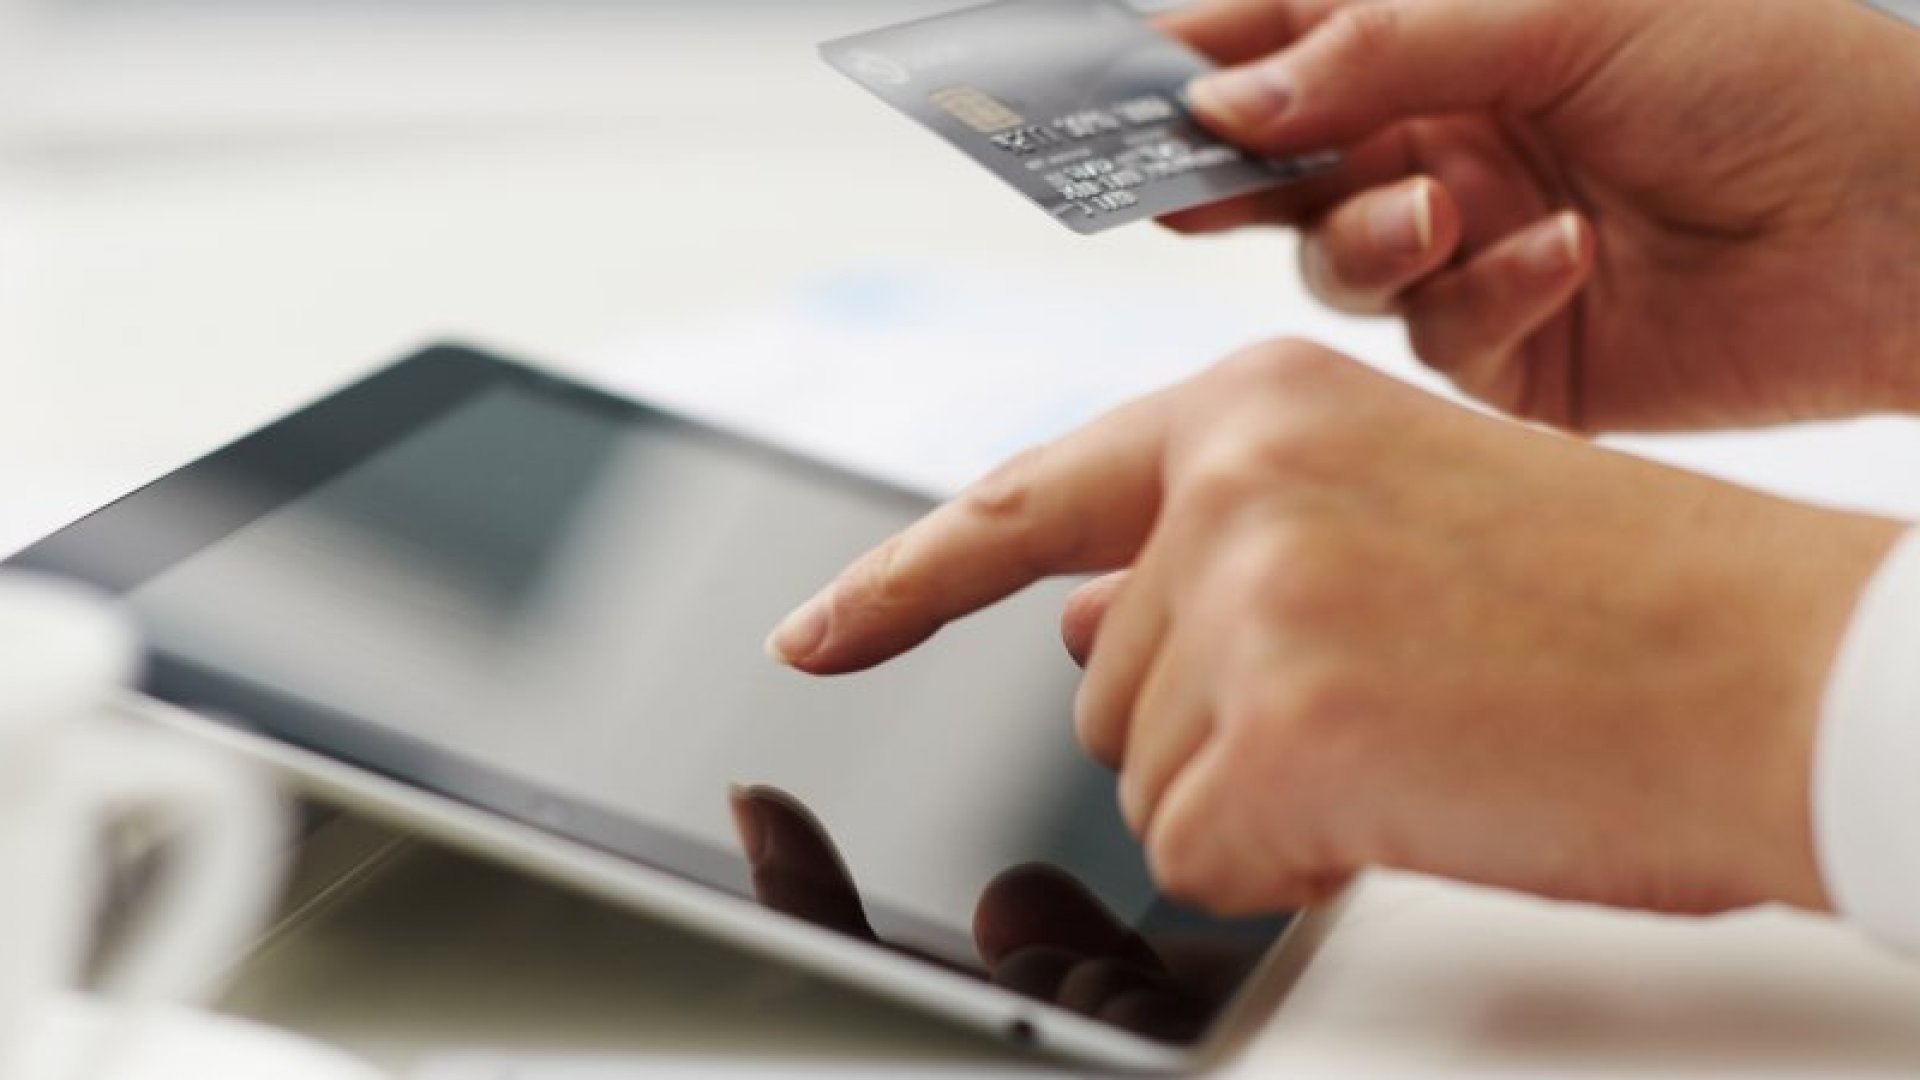 7 E-Commerce Trends to Watch in 2015